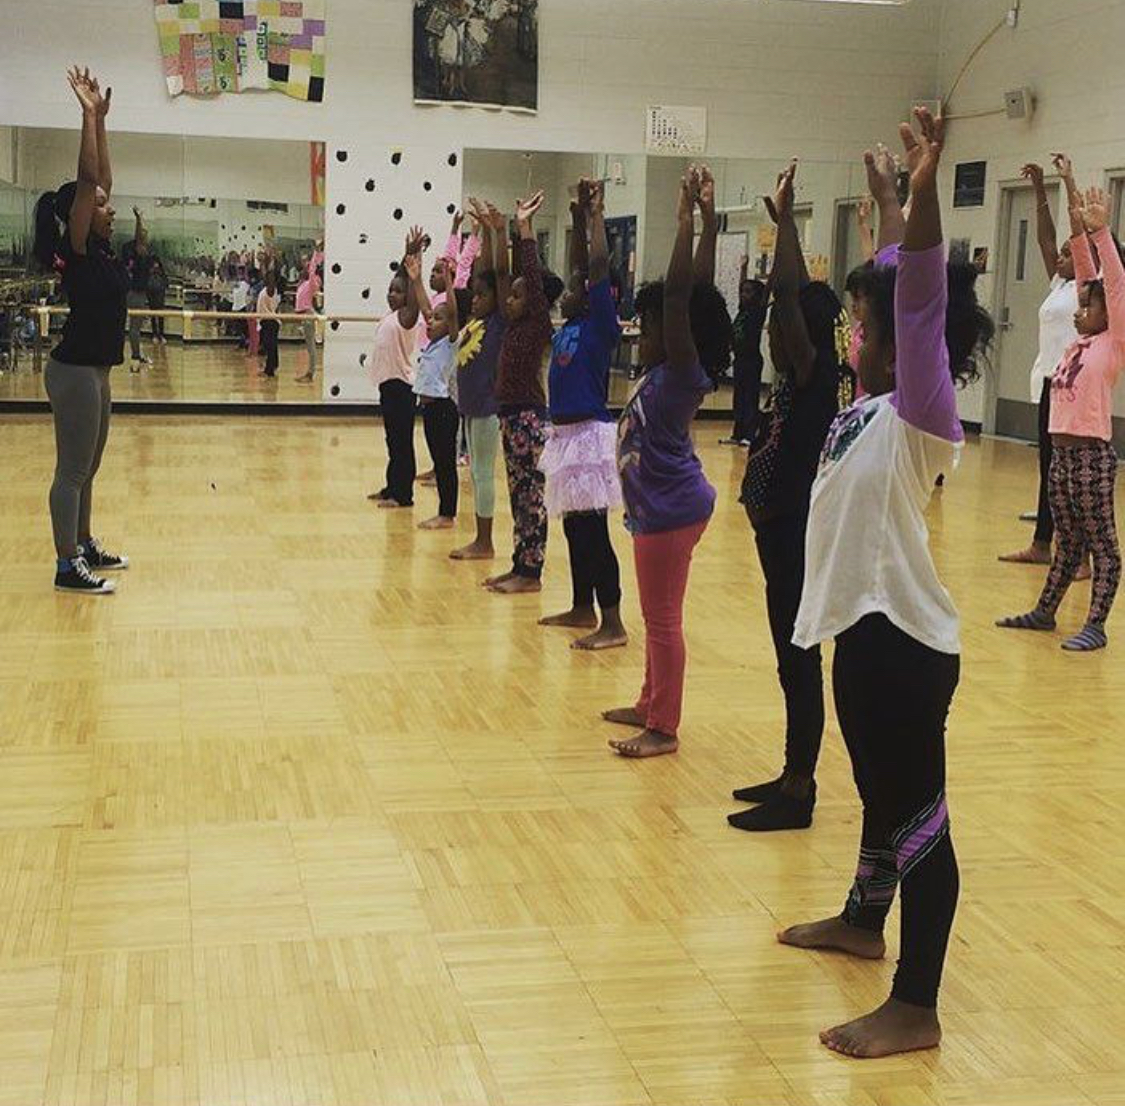 """SDDC Outreach - Studio Detroit seeks to create a challenging learning environment beyond its walls for students that encourage high expectations for success through the Arts with appropriate instruction that allows for individual differences and learning styles. As such, SDDC's outreach program provides on-site dance instruction to additional youth participants found at the metro-Detroit educational and recreational institutions who have established an outreach partnership with the studio. We provide a safe, orderly, caring, and supportive environment where each student's self-esteem is fostered by positive social, emotional, physical and intellectual development.If you're organization is interested in joining our outreach program, simply send us an email through the """"Contact Us"""" page including your name, the name of your organization, phone number, anticipated program start and end dates, and any additional details, and an SDDC team member will follow up with you."""